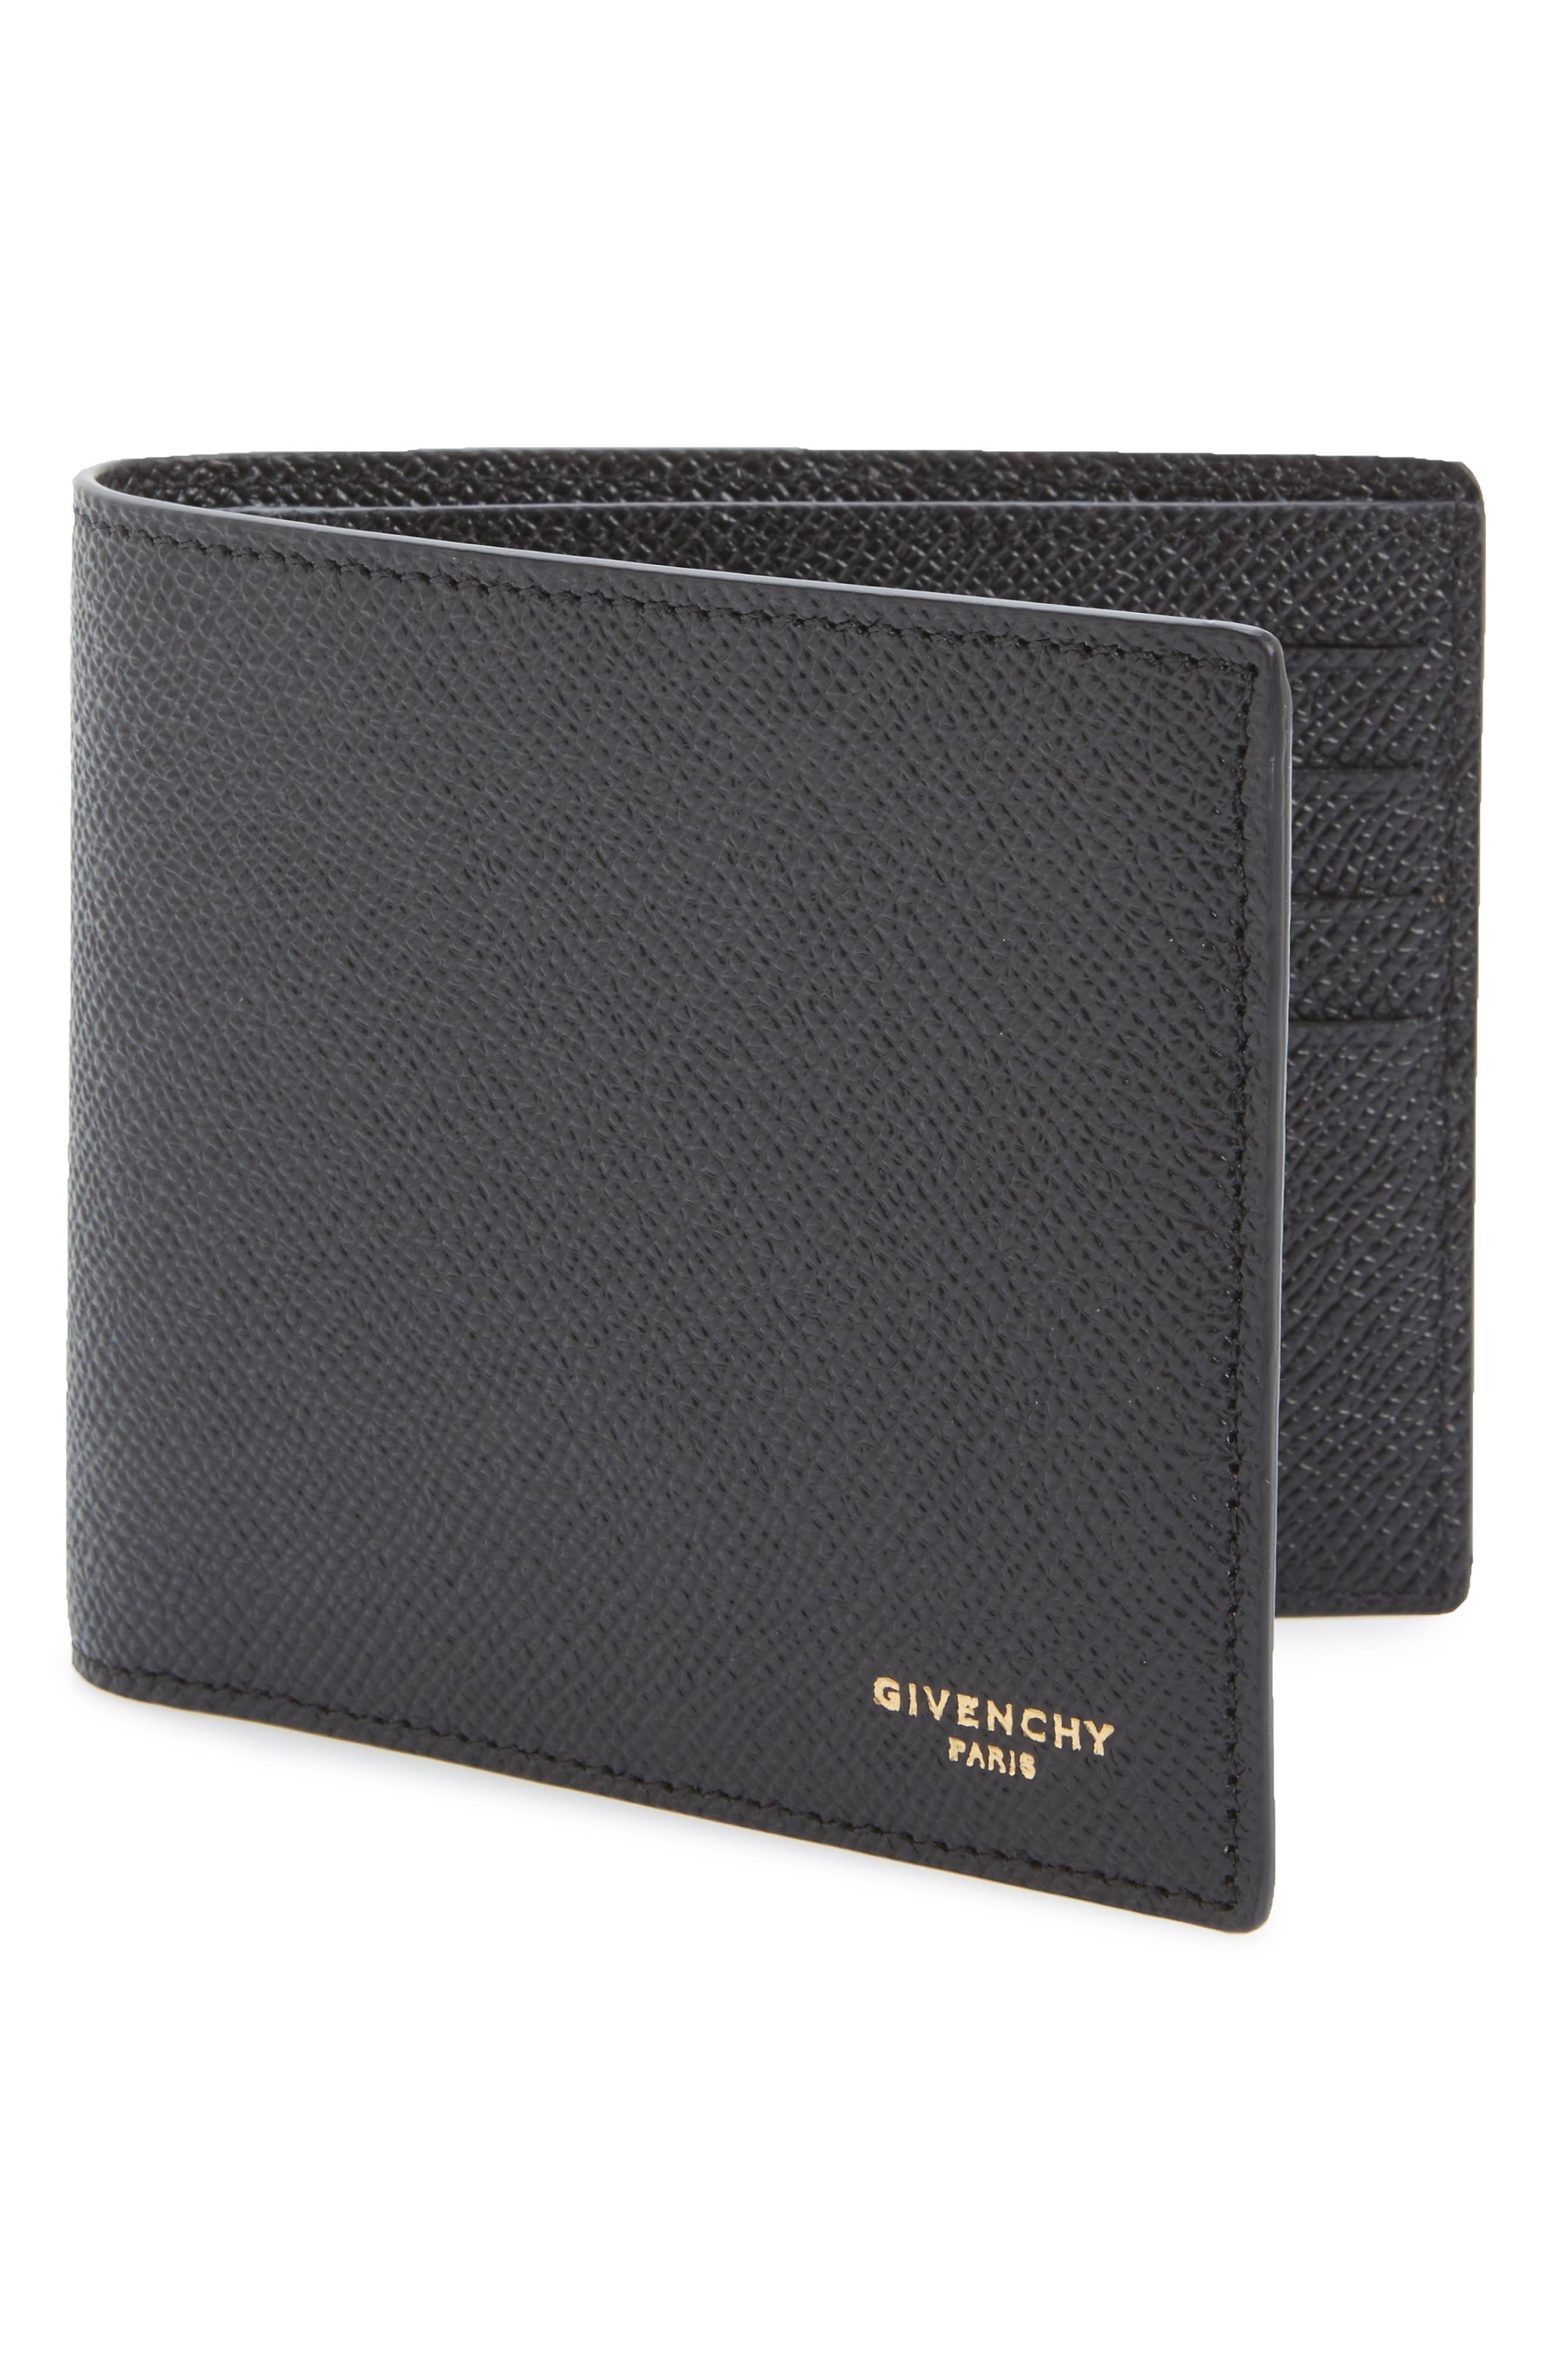 Calfskin Leather Bifold Wallet,                             Alternate thumbnail 4, color,                             BLACK